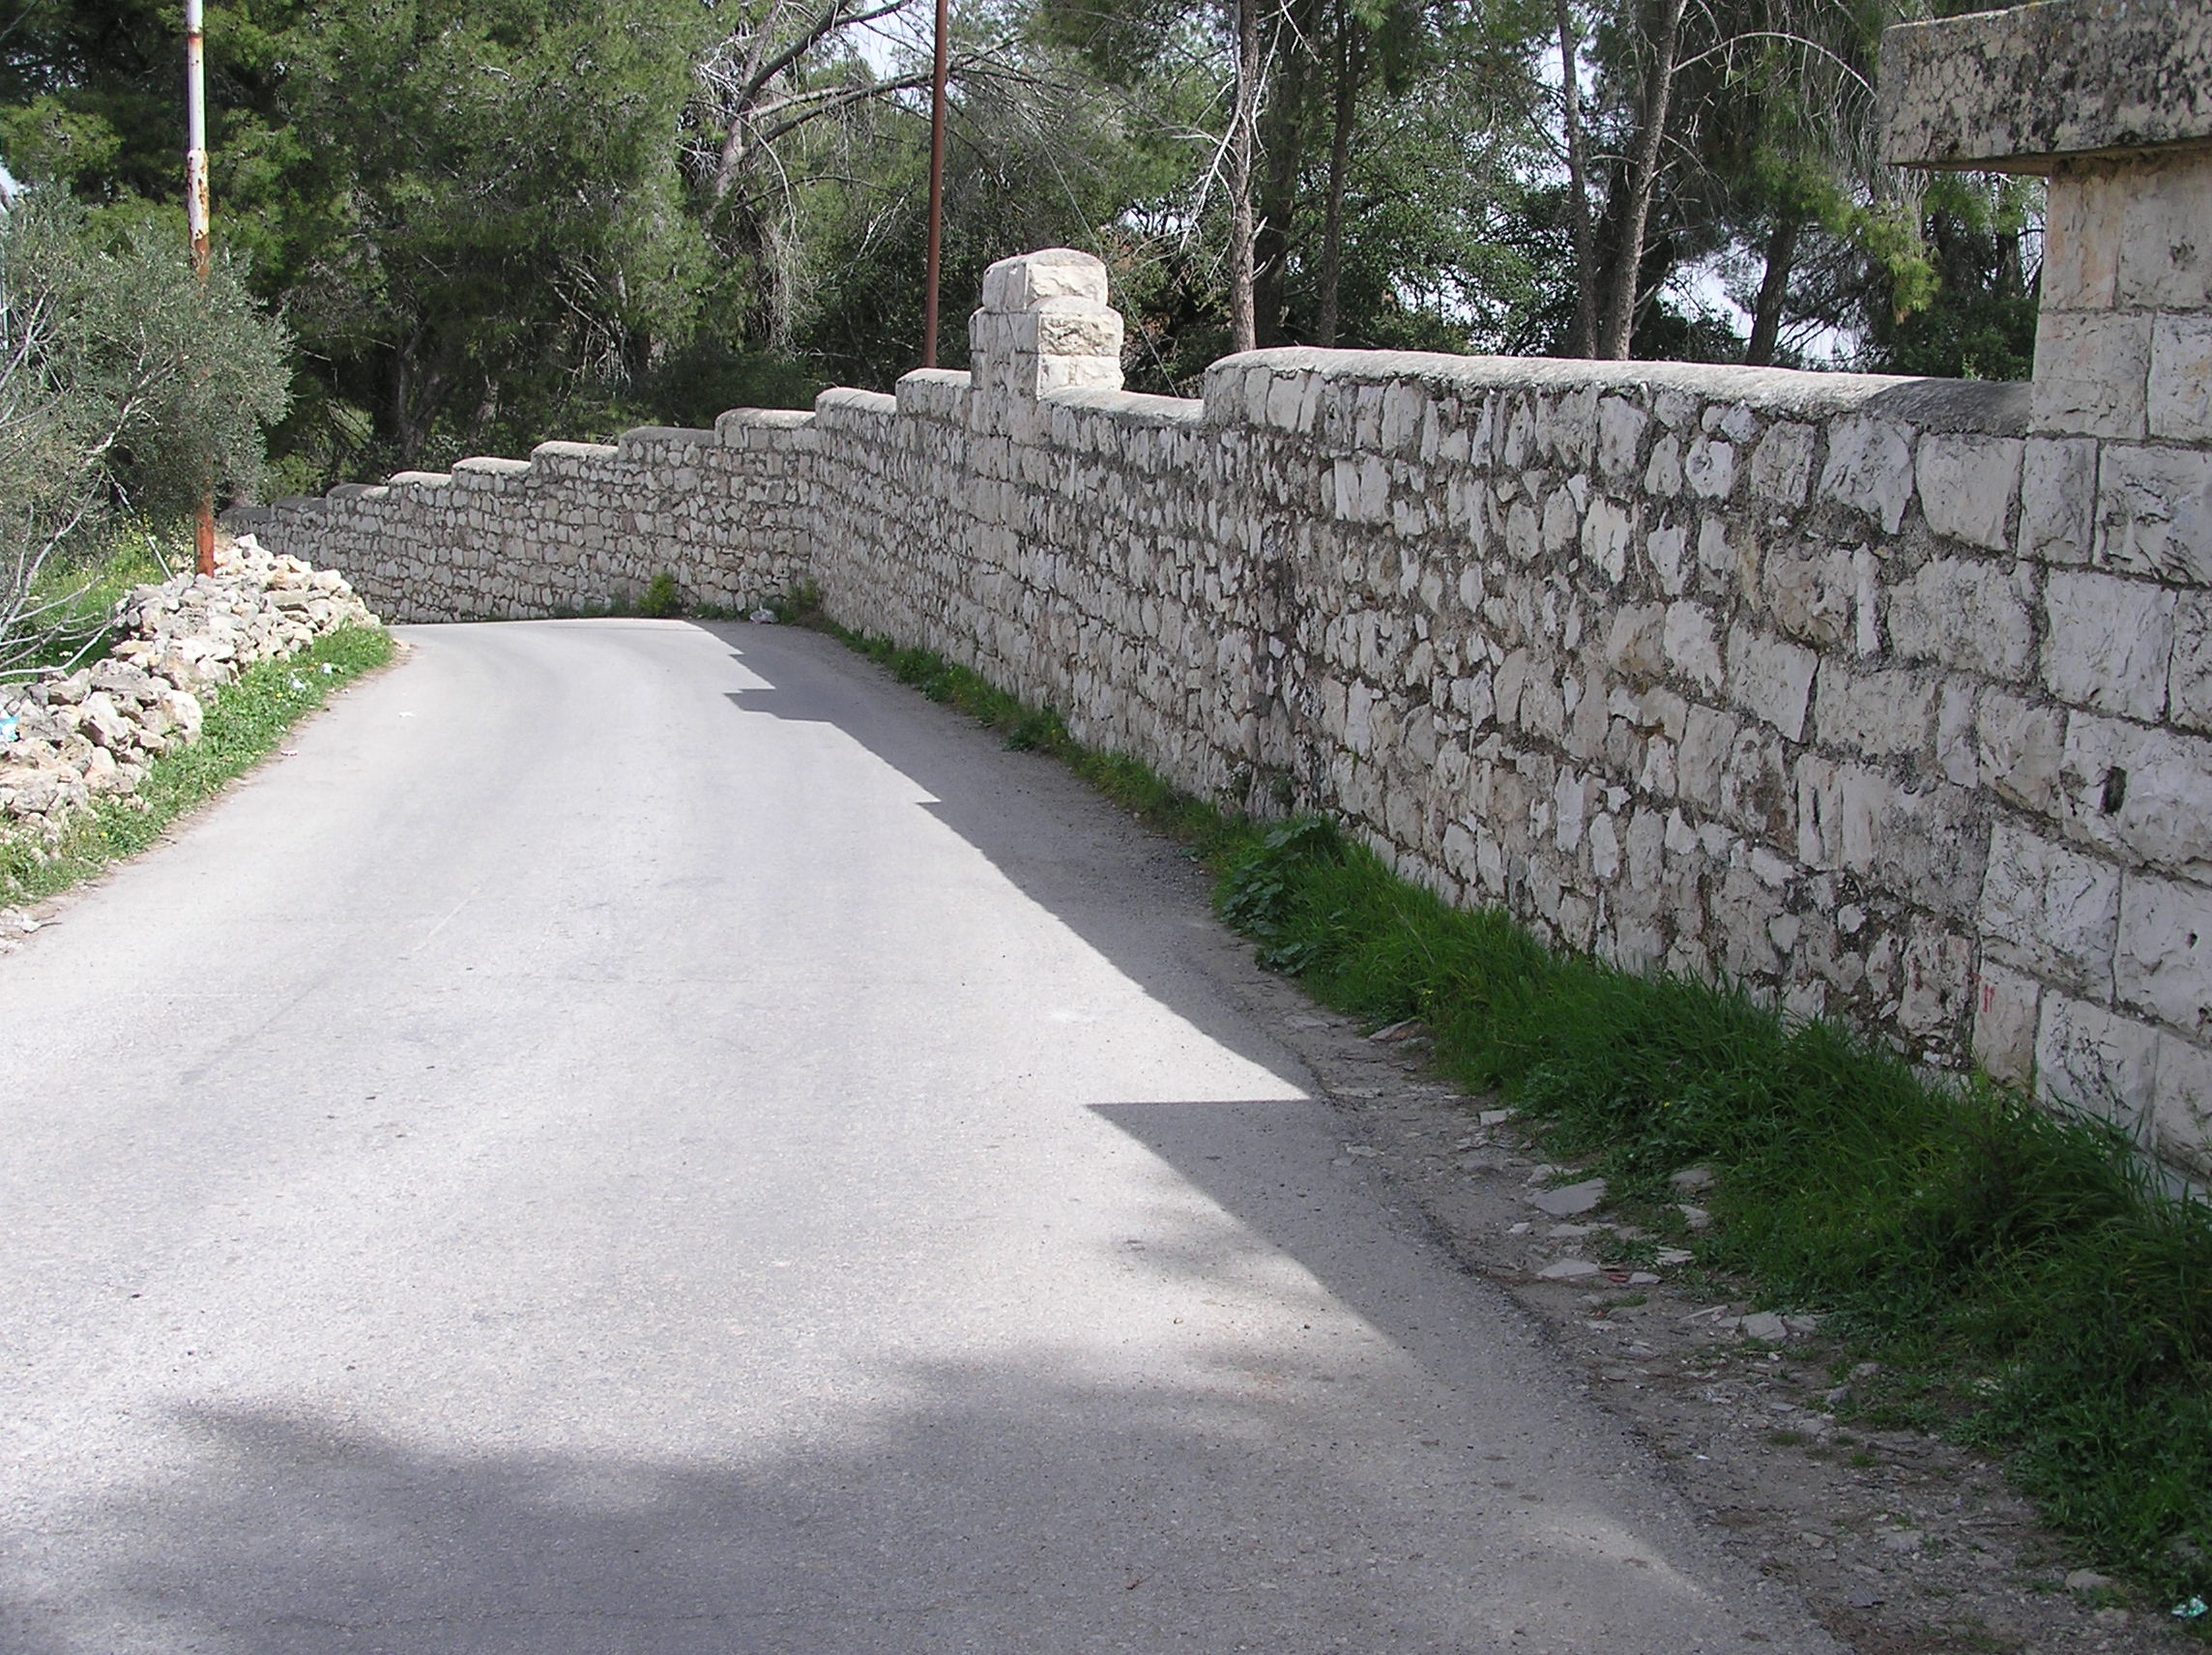 Sharafat - شرفات : Sharafat - Downward The Main Sharafat Road / Alami Stone Wall.